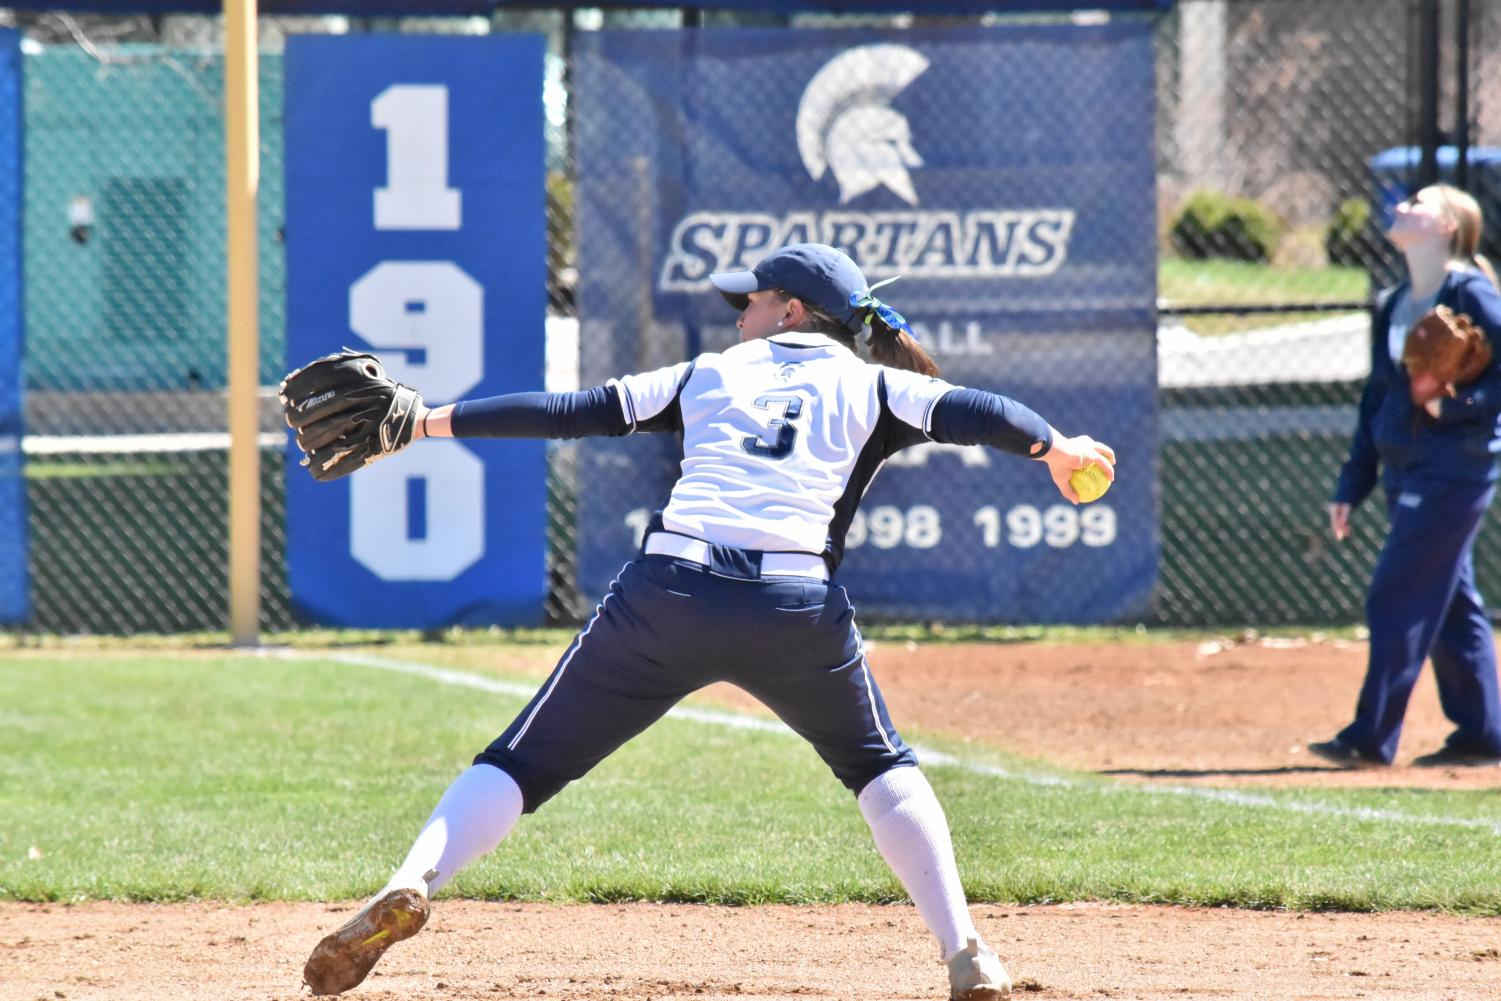 The softball team bounced back from a loss to win three straight games against New York University, bringing the team's record to 20-7.